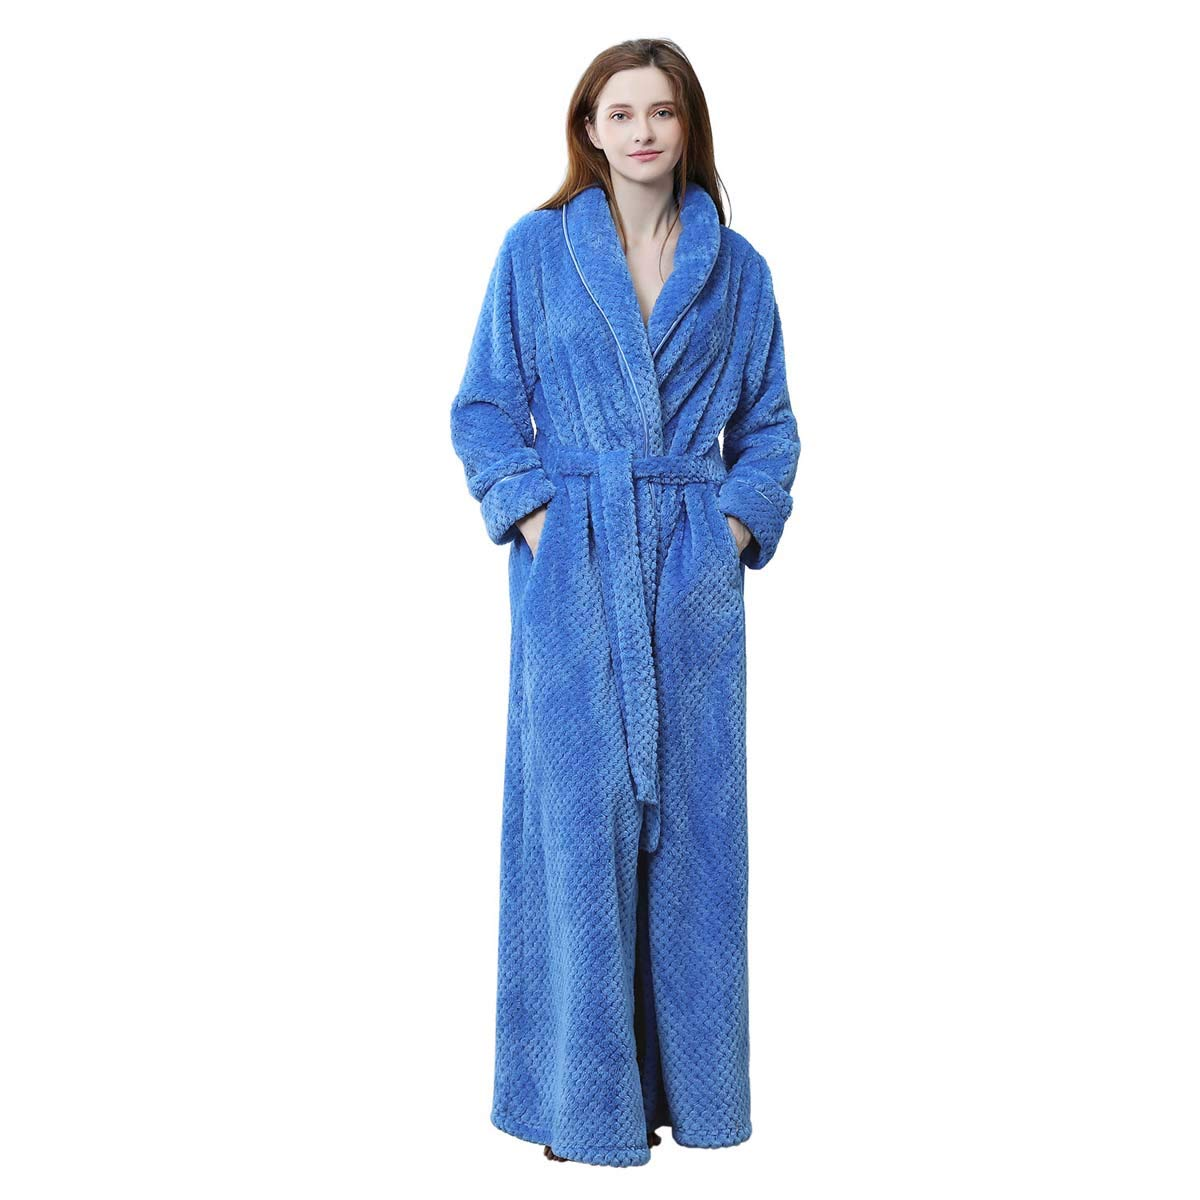 3419c02306 Womens Long Robe Soft Fleece Fluffy Plush Bathrobe Ladies Winter Warm  Sleepwear Pajamas Top Housecoat Nightgown at Amazon Women s Clothing store